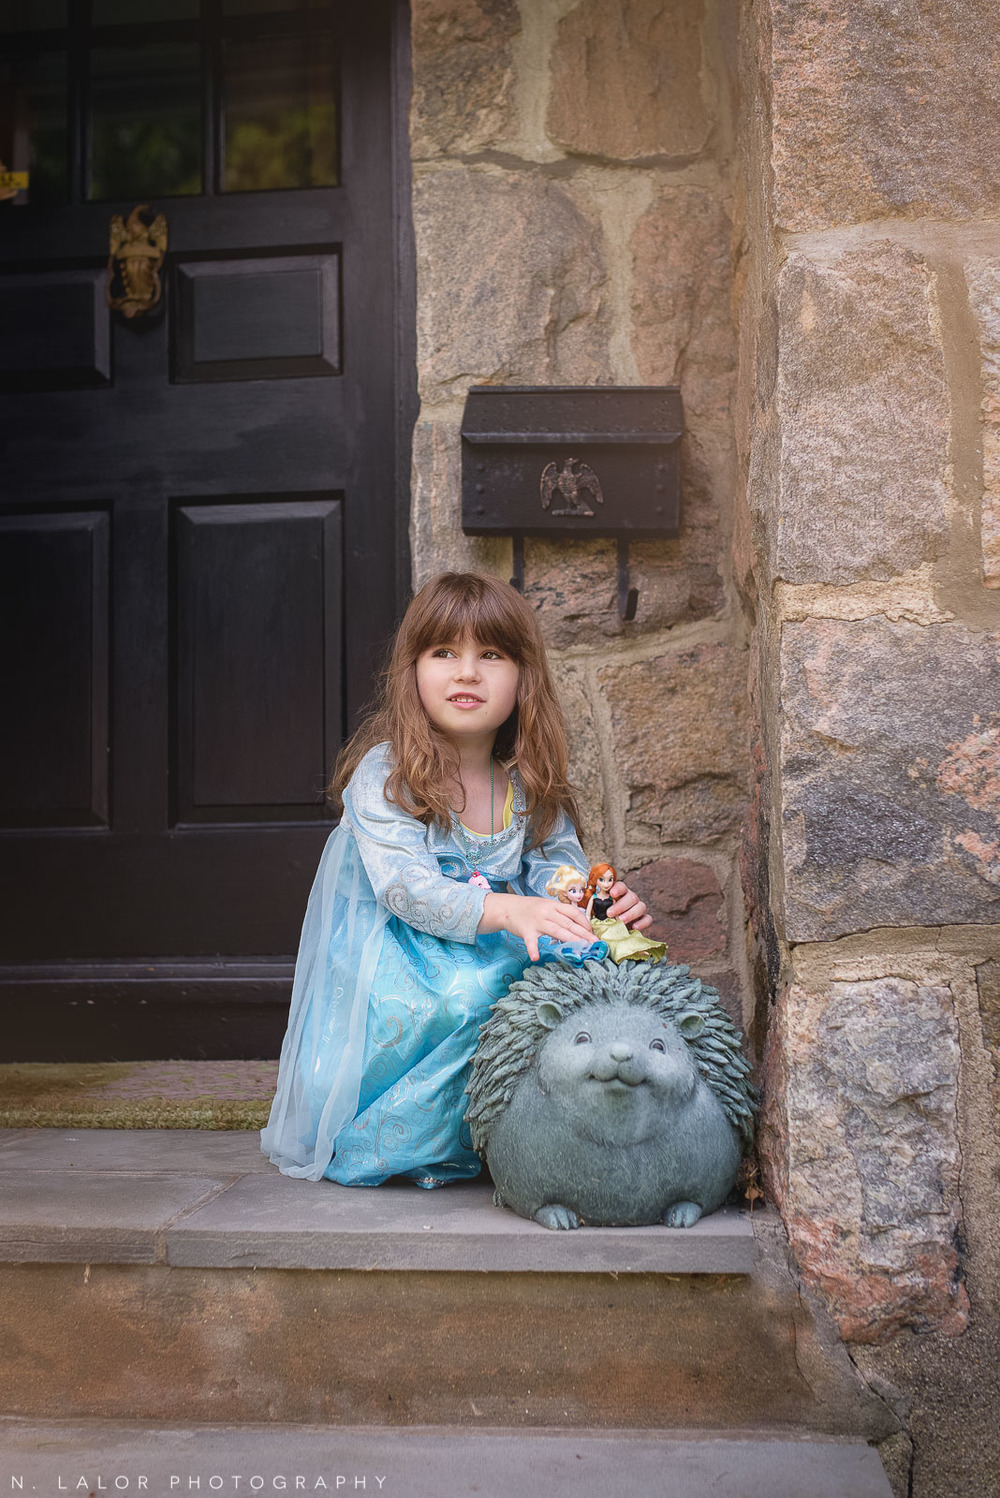 nlalor-photography-2015-daisy-being-elsa-stamford-ct-11.jpg